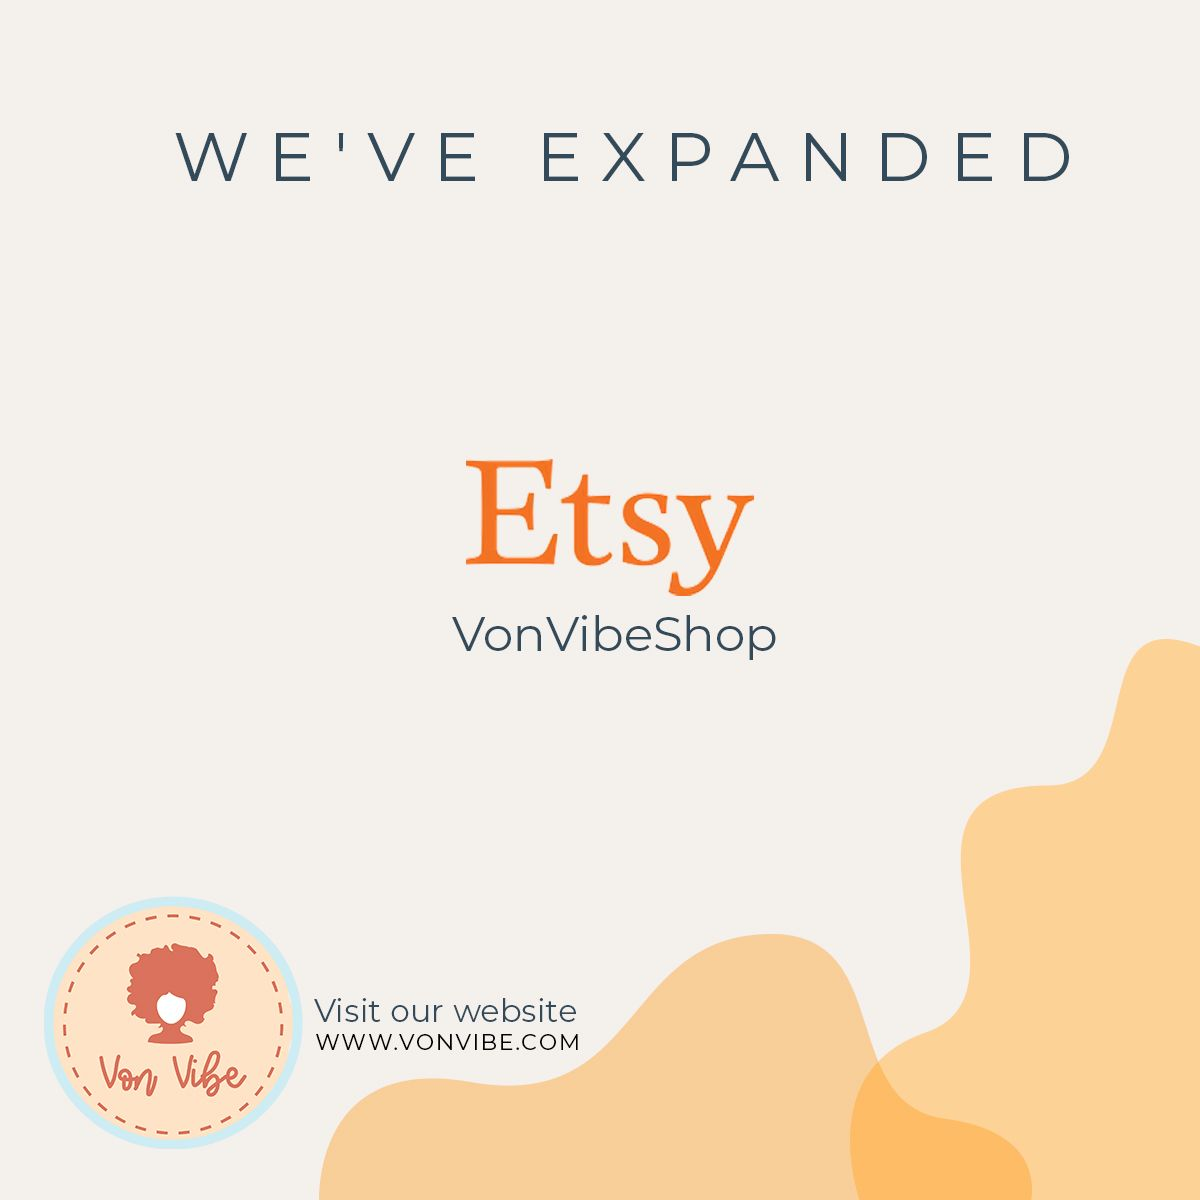 The Von Vibe brand has expanded. You can now shop for our product on ETSY. Just search Von Vibe Shop on ETSY to locate our shop! _ - #etsy #etsyshop #vonvibeetsyshop #vonvibe #vonvibekids #NourishTheirConfidence #naturalhairloves #naturalhairgoals #kidshairstyles #naturalhairstyles #naturalhair #4chairgrowth #3chair #3ccurls #4bhair #4bhairstyles #3bhair #3bcurls #vonvibe #curlyhairdontcare #kinkycurly #kidshairproducts #naturalhairproducts #kidshaircare #mixedhair #mixedhairkids